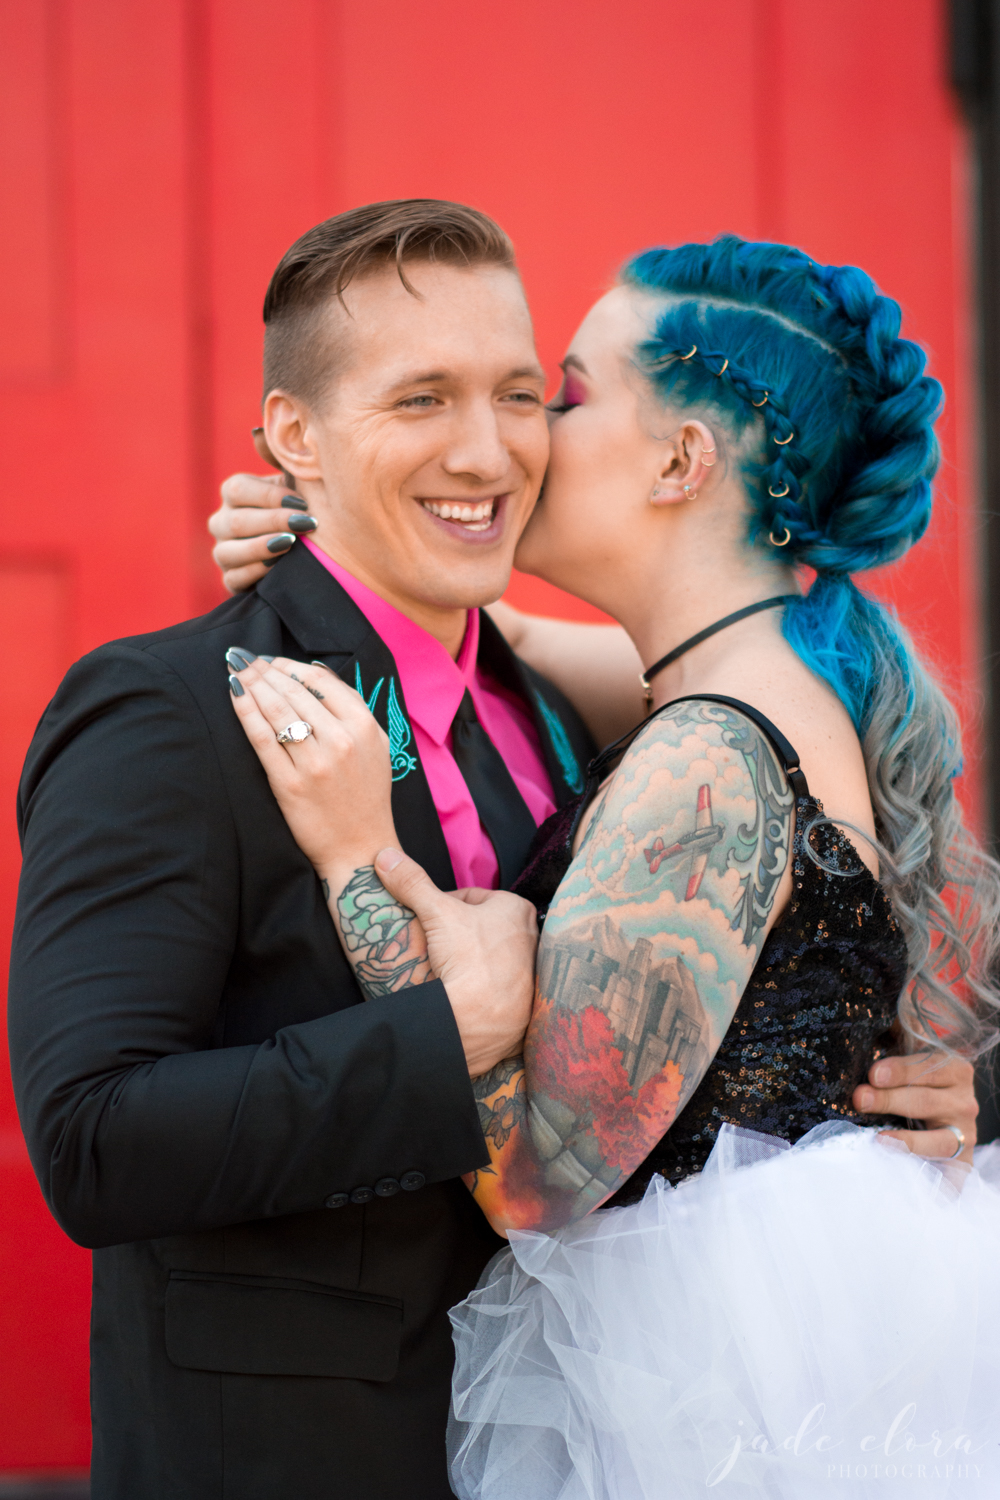 Colorful-Punk-Wedding-LA-16.jpg